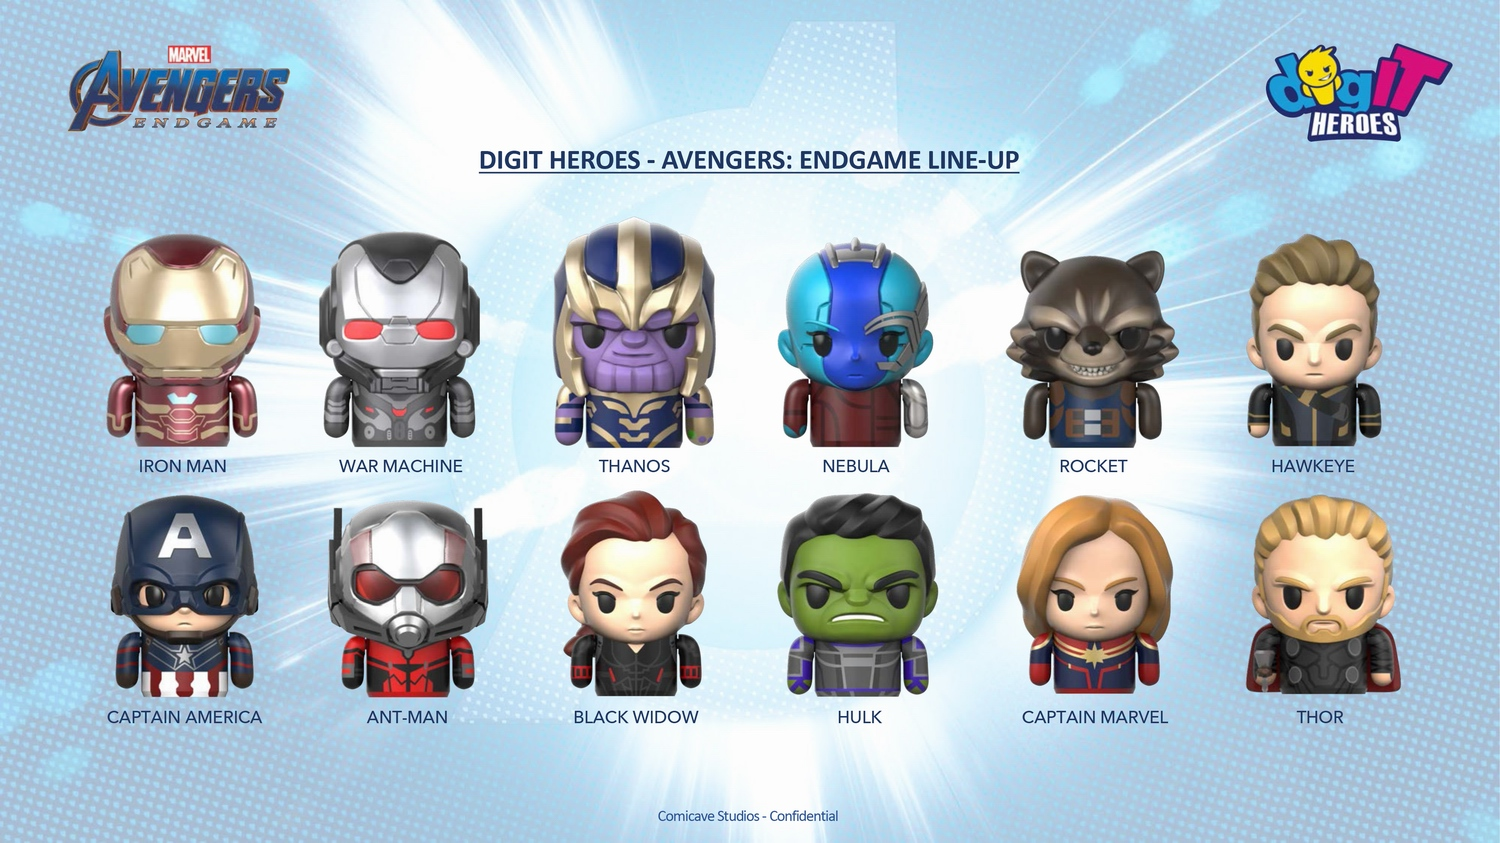 复制 SalesKit - digIT Avengers Endgame (blind box)-3.jpg